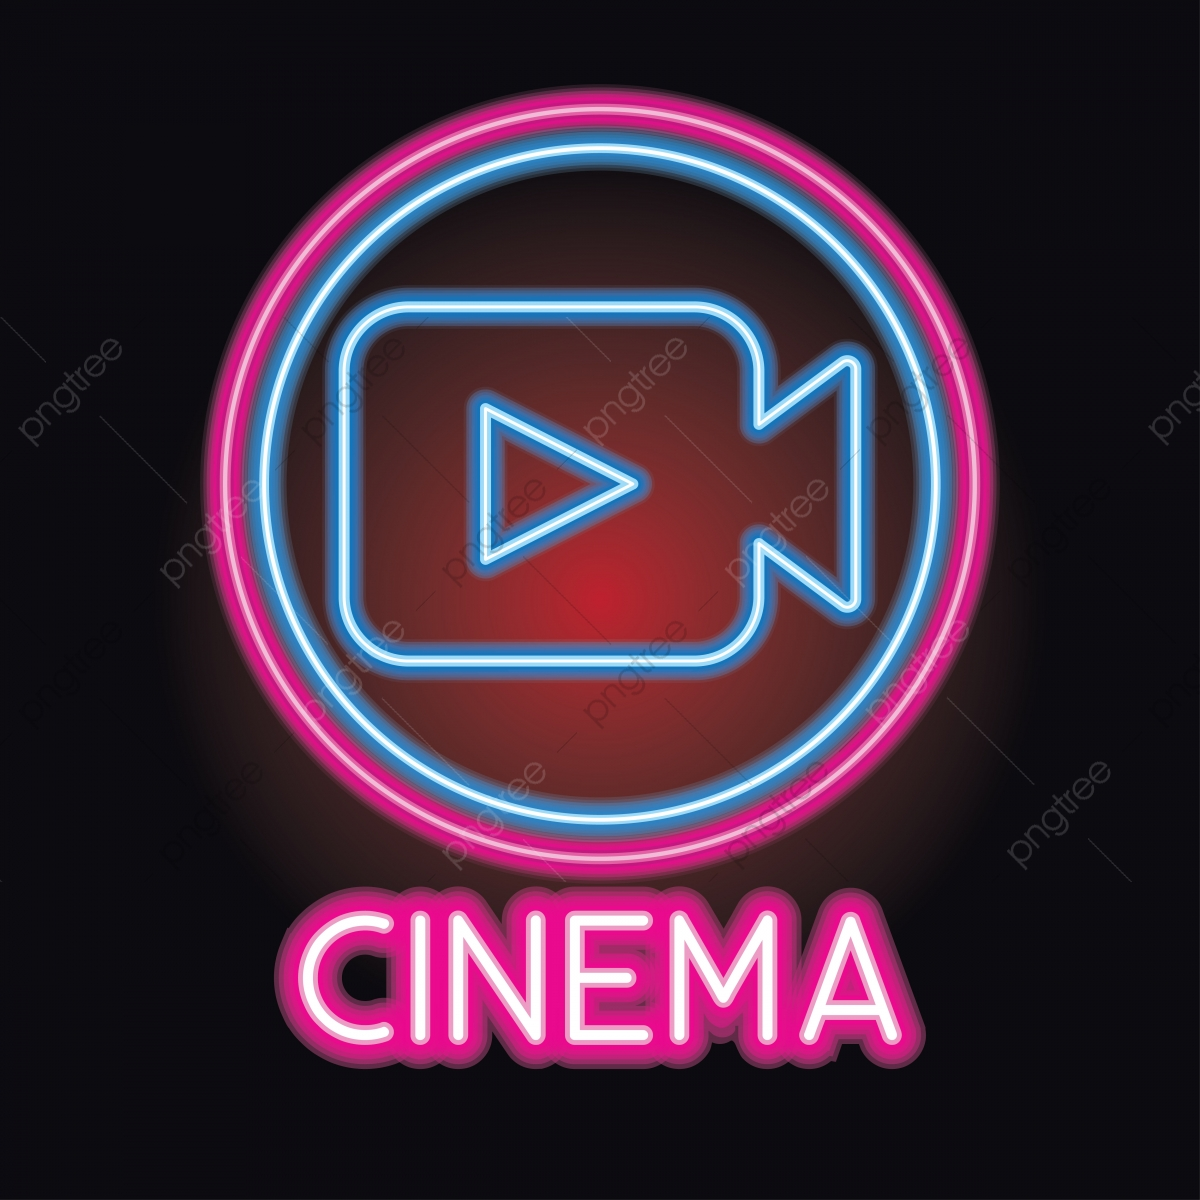 Movie Cinema Entertainment Logo With Neon Sign Effect Vector